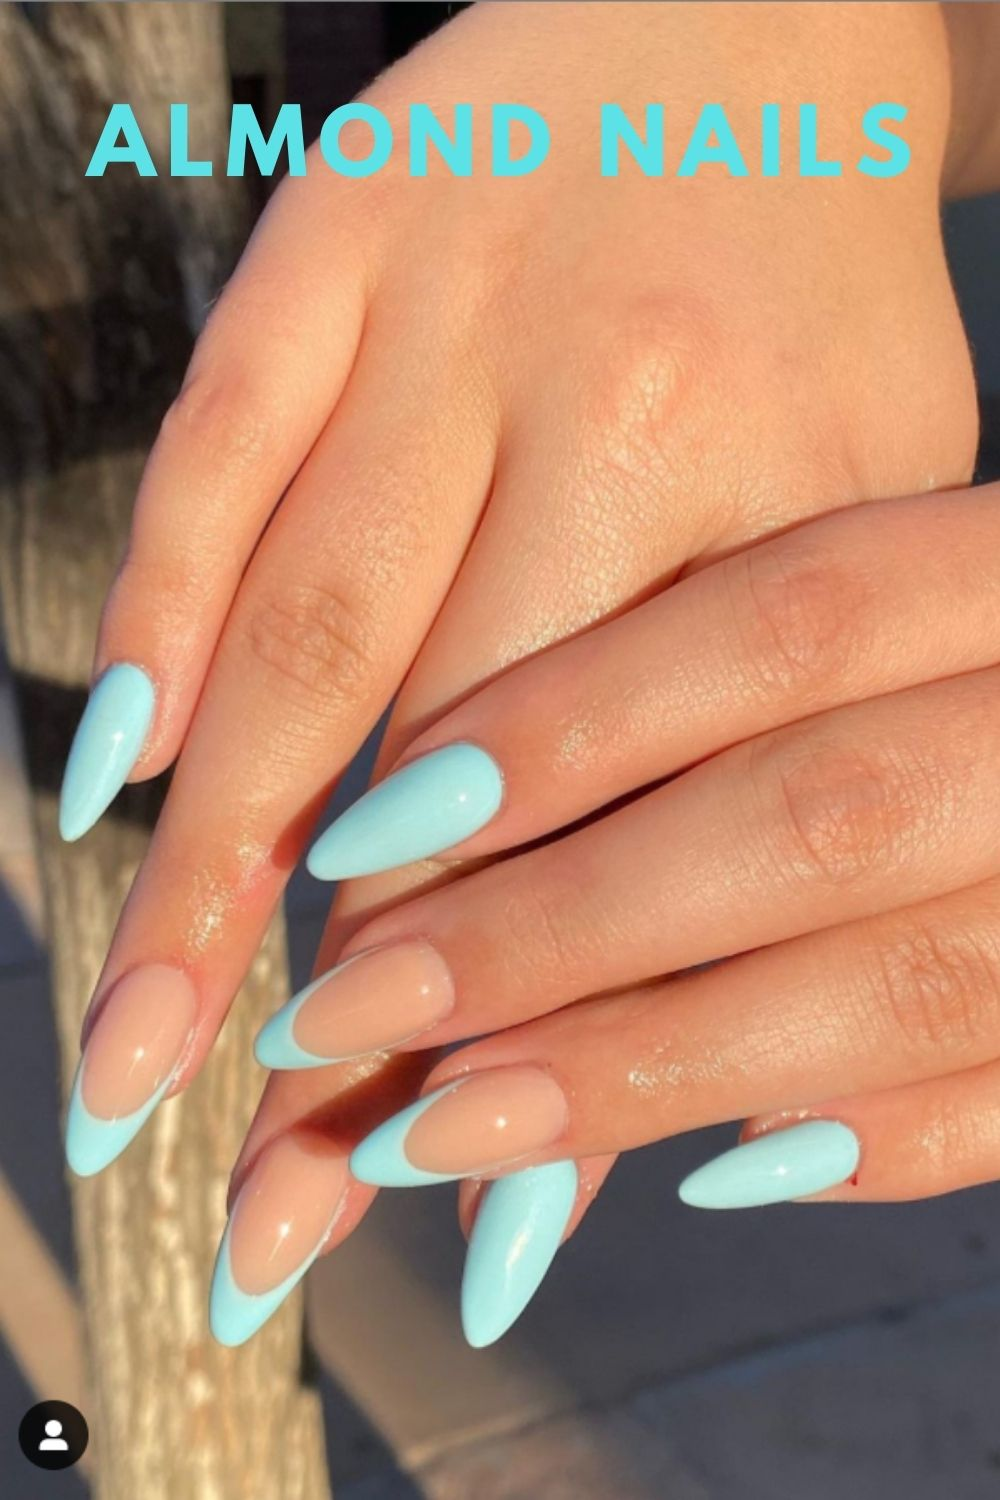 40 Stunning Almond-Shaped Nails Art for Autumn Nails 2021